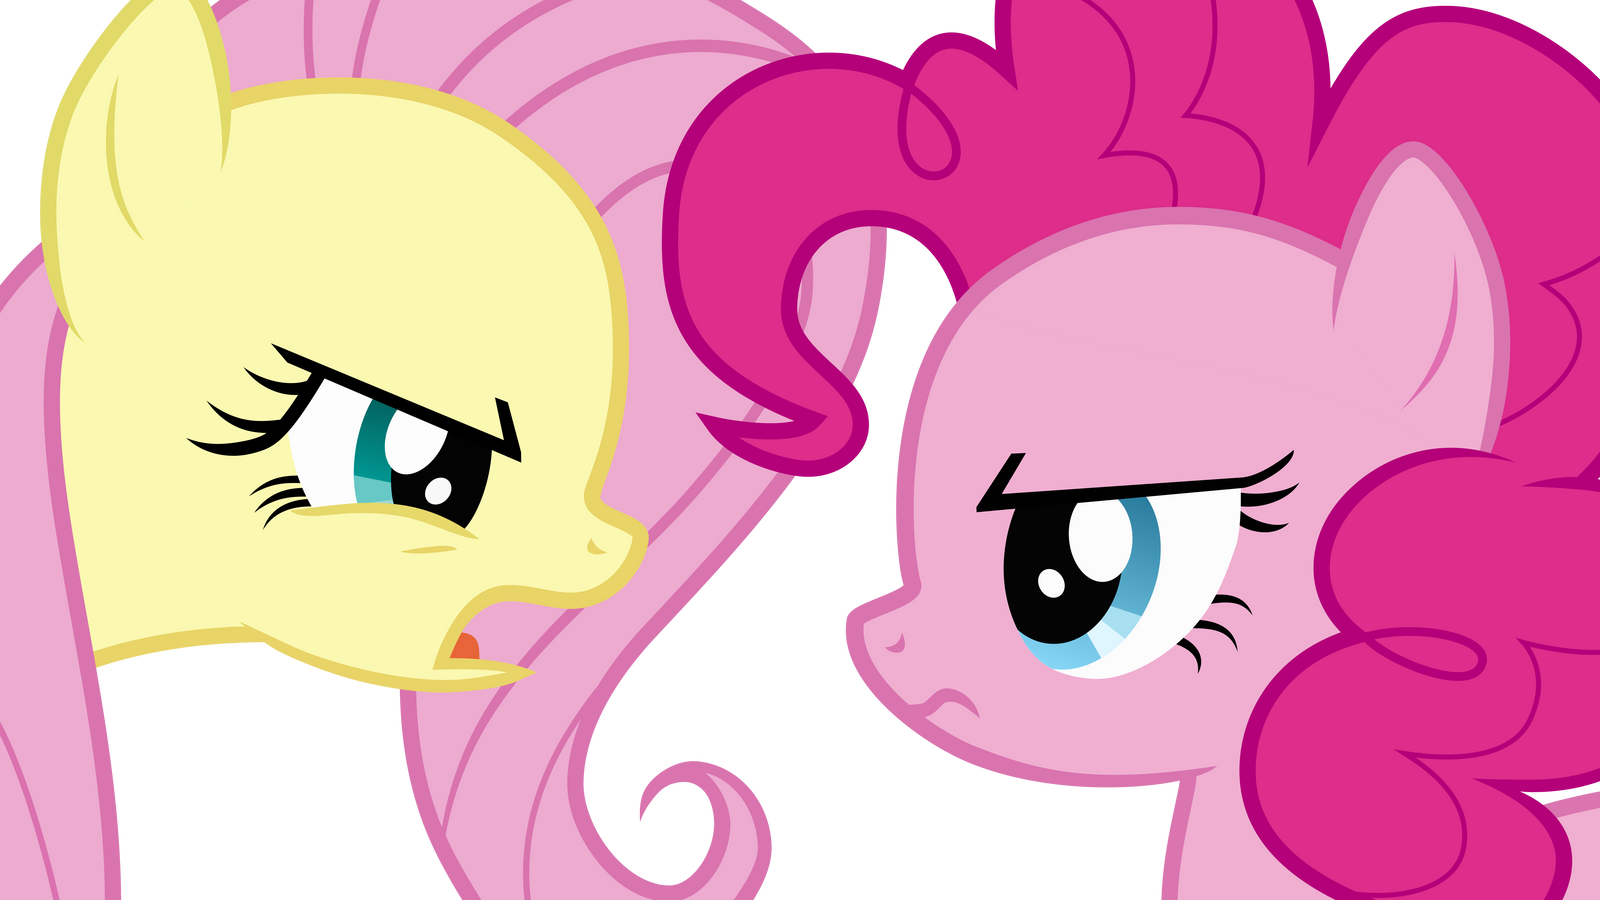 fluttershy and pinkie pie arguing by uponia on deviantart